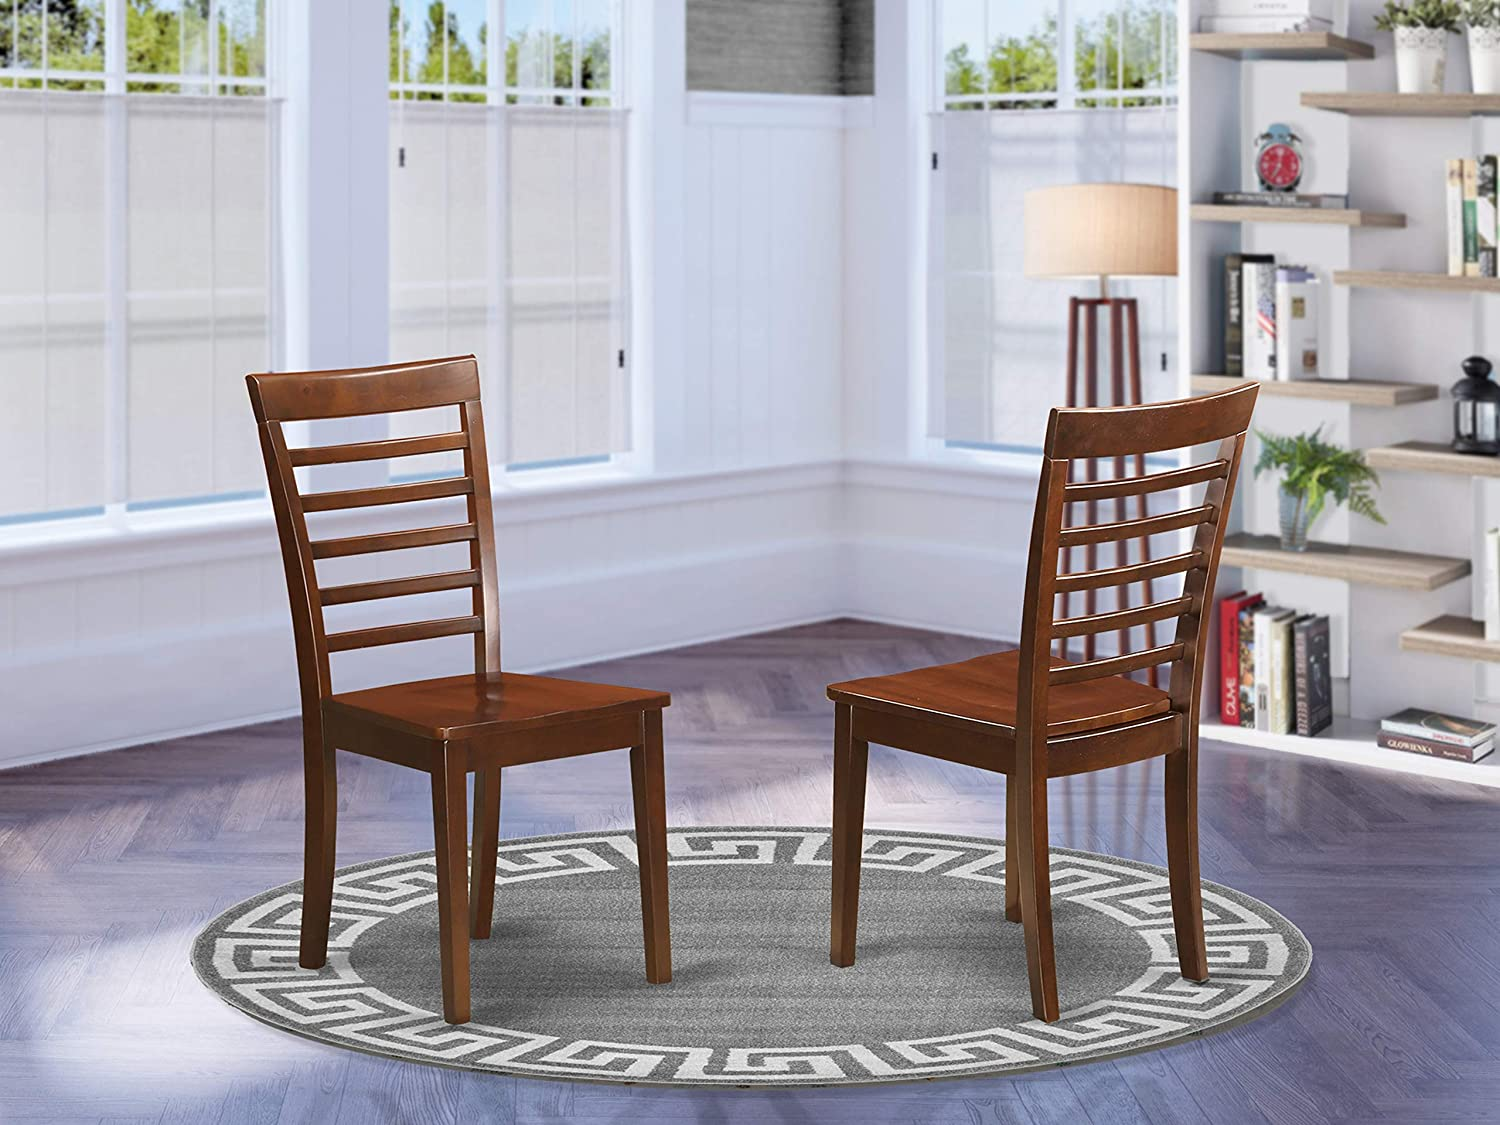 East West Furniture Milan dining chairs - Wooden Seat and Mahogany Hardwood Structure dining chair set of 2